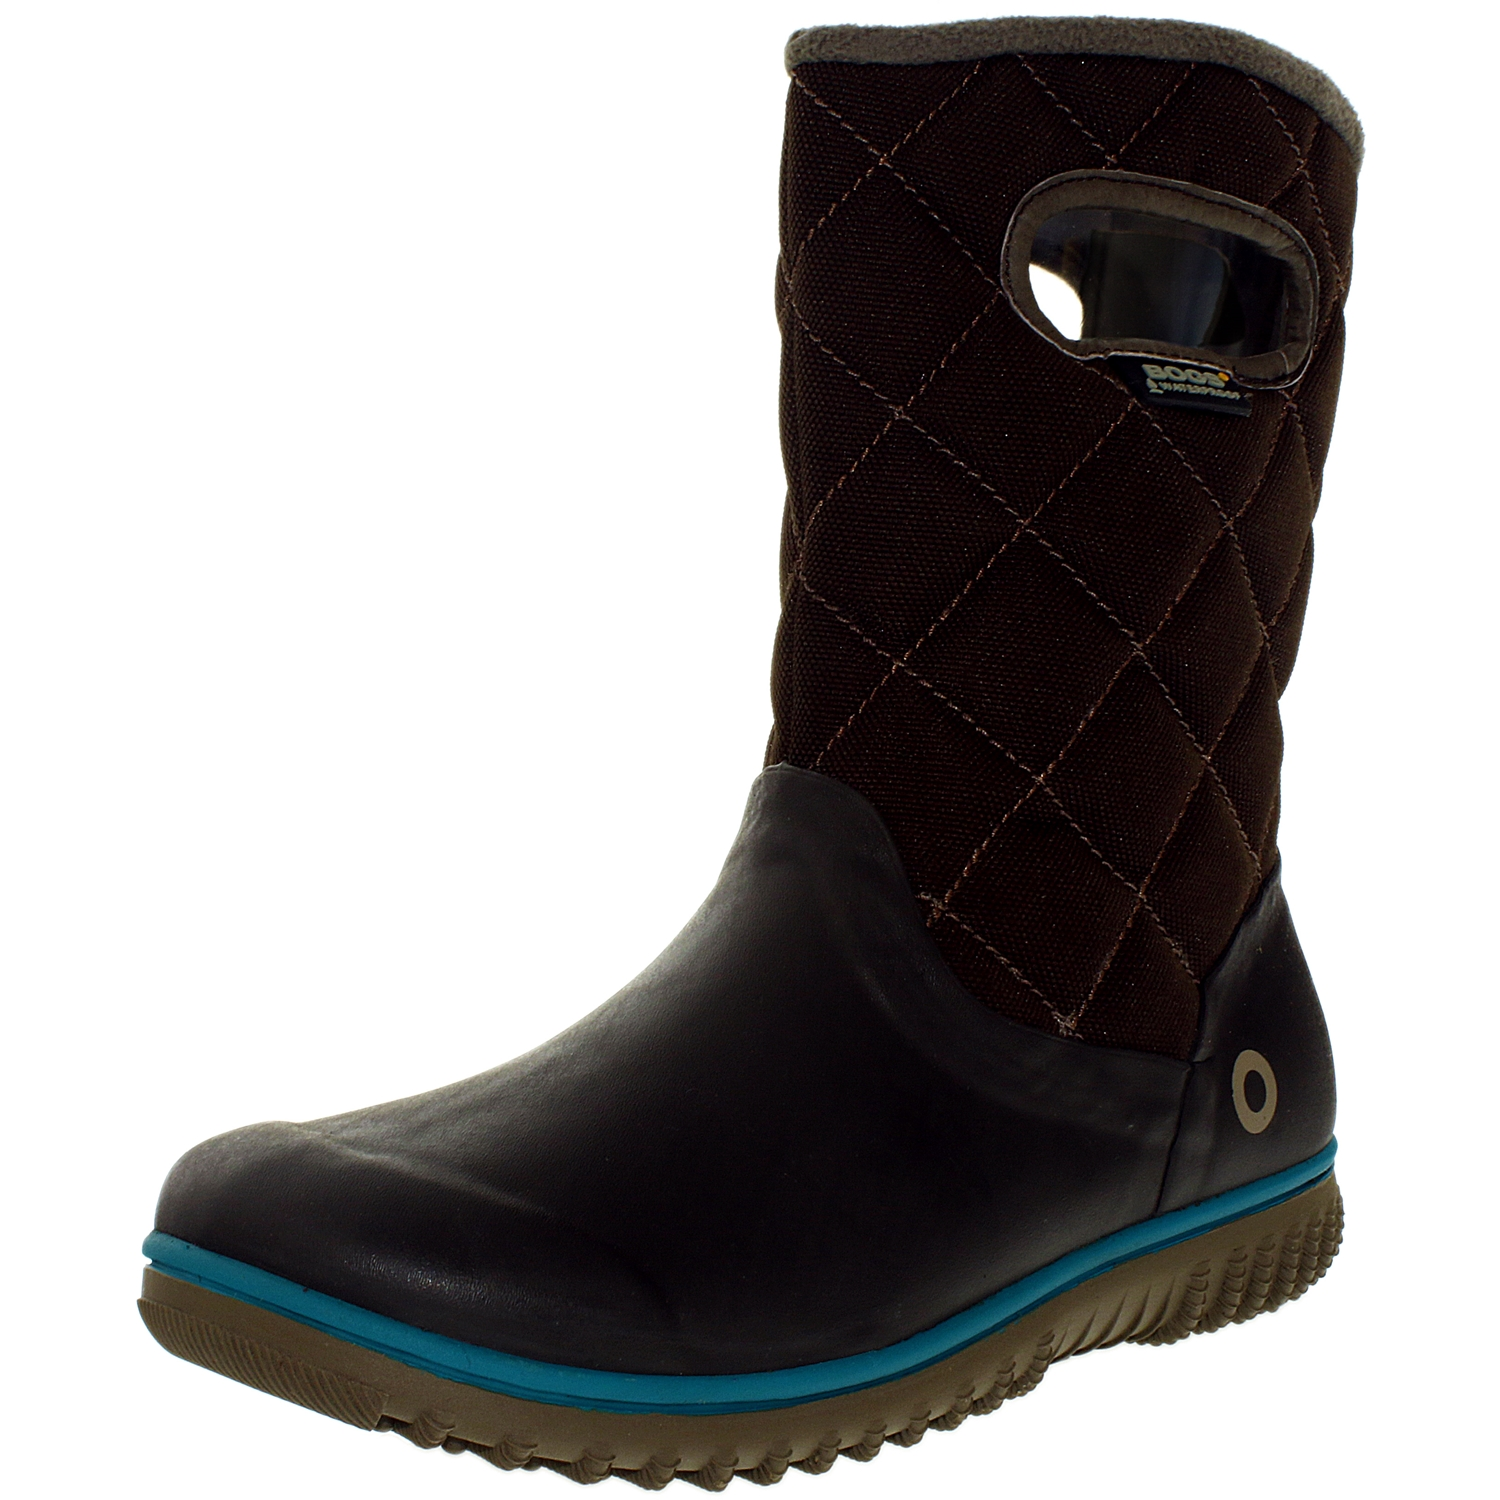 Bogs Women's Juno Mid Chocolate Ankle-High Fabric Rain Bo...